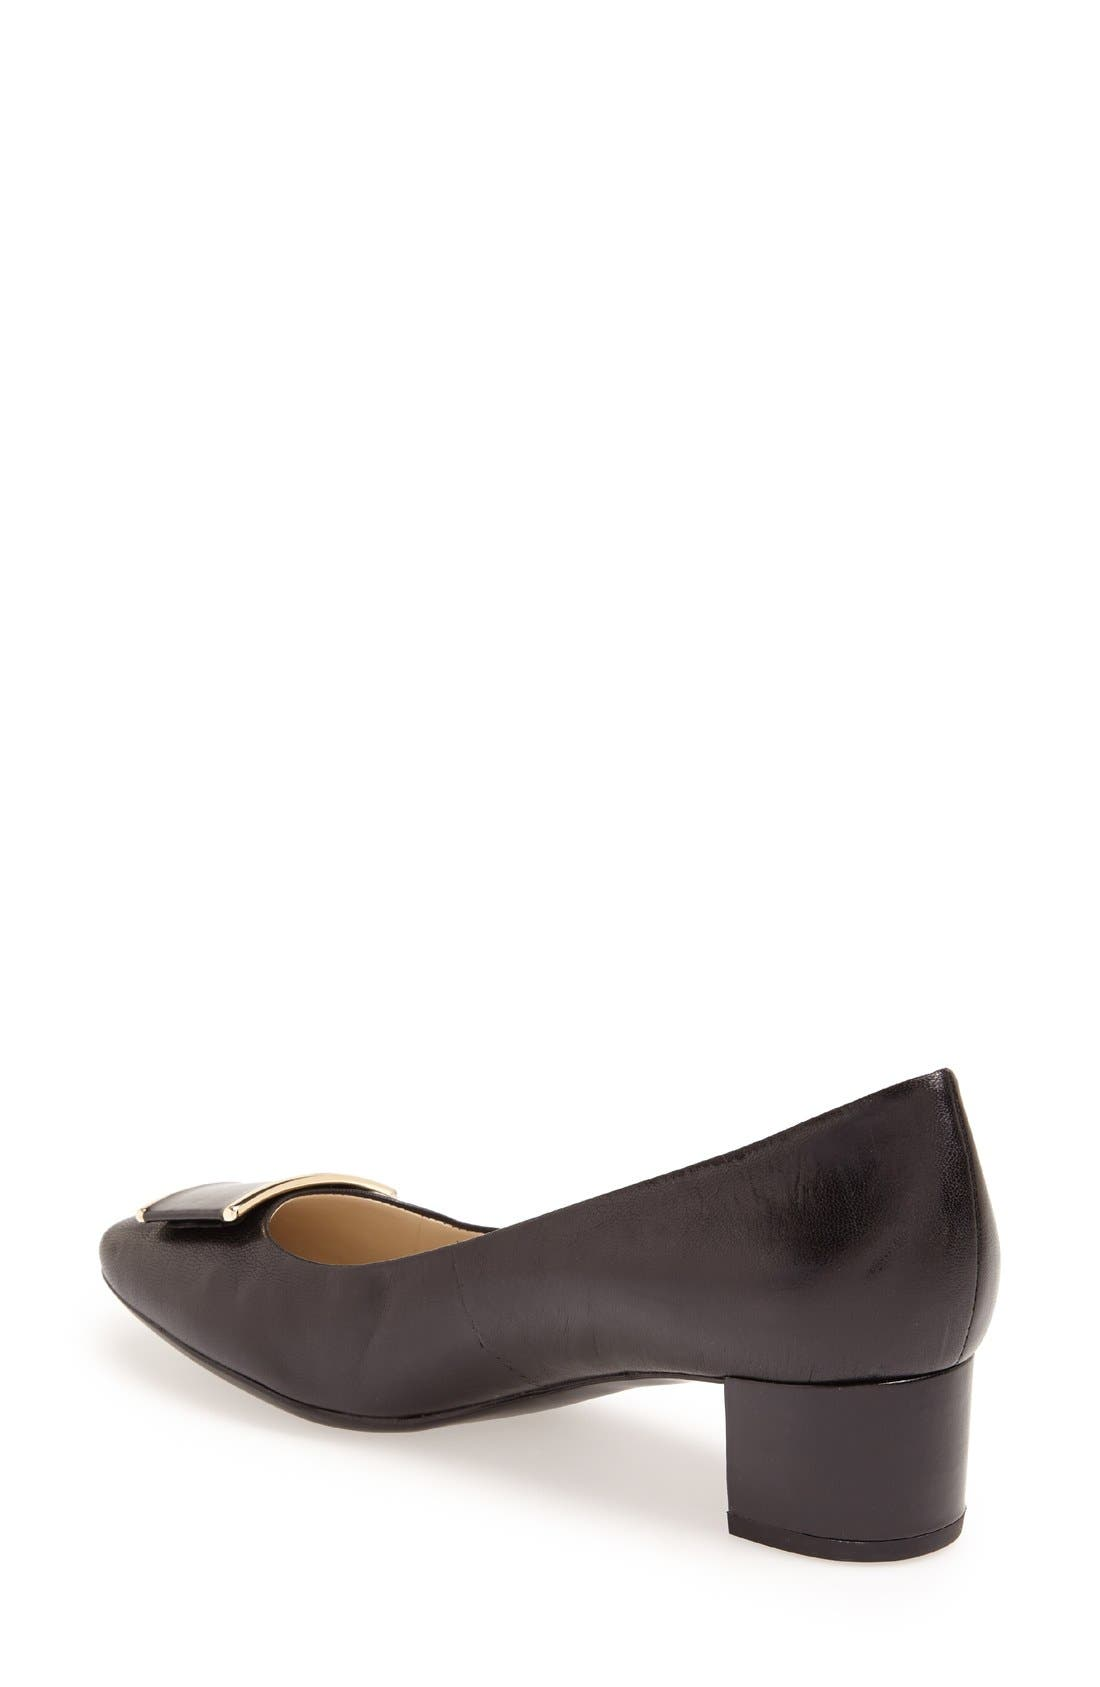 Alternate Image 2  - Naturalizer 'Faulkner' Leather Pump (Women)